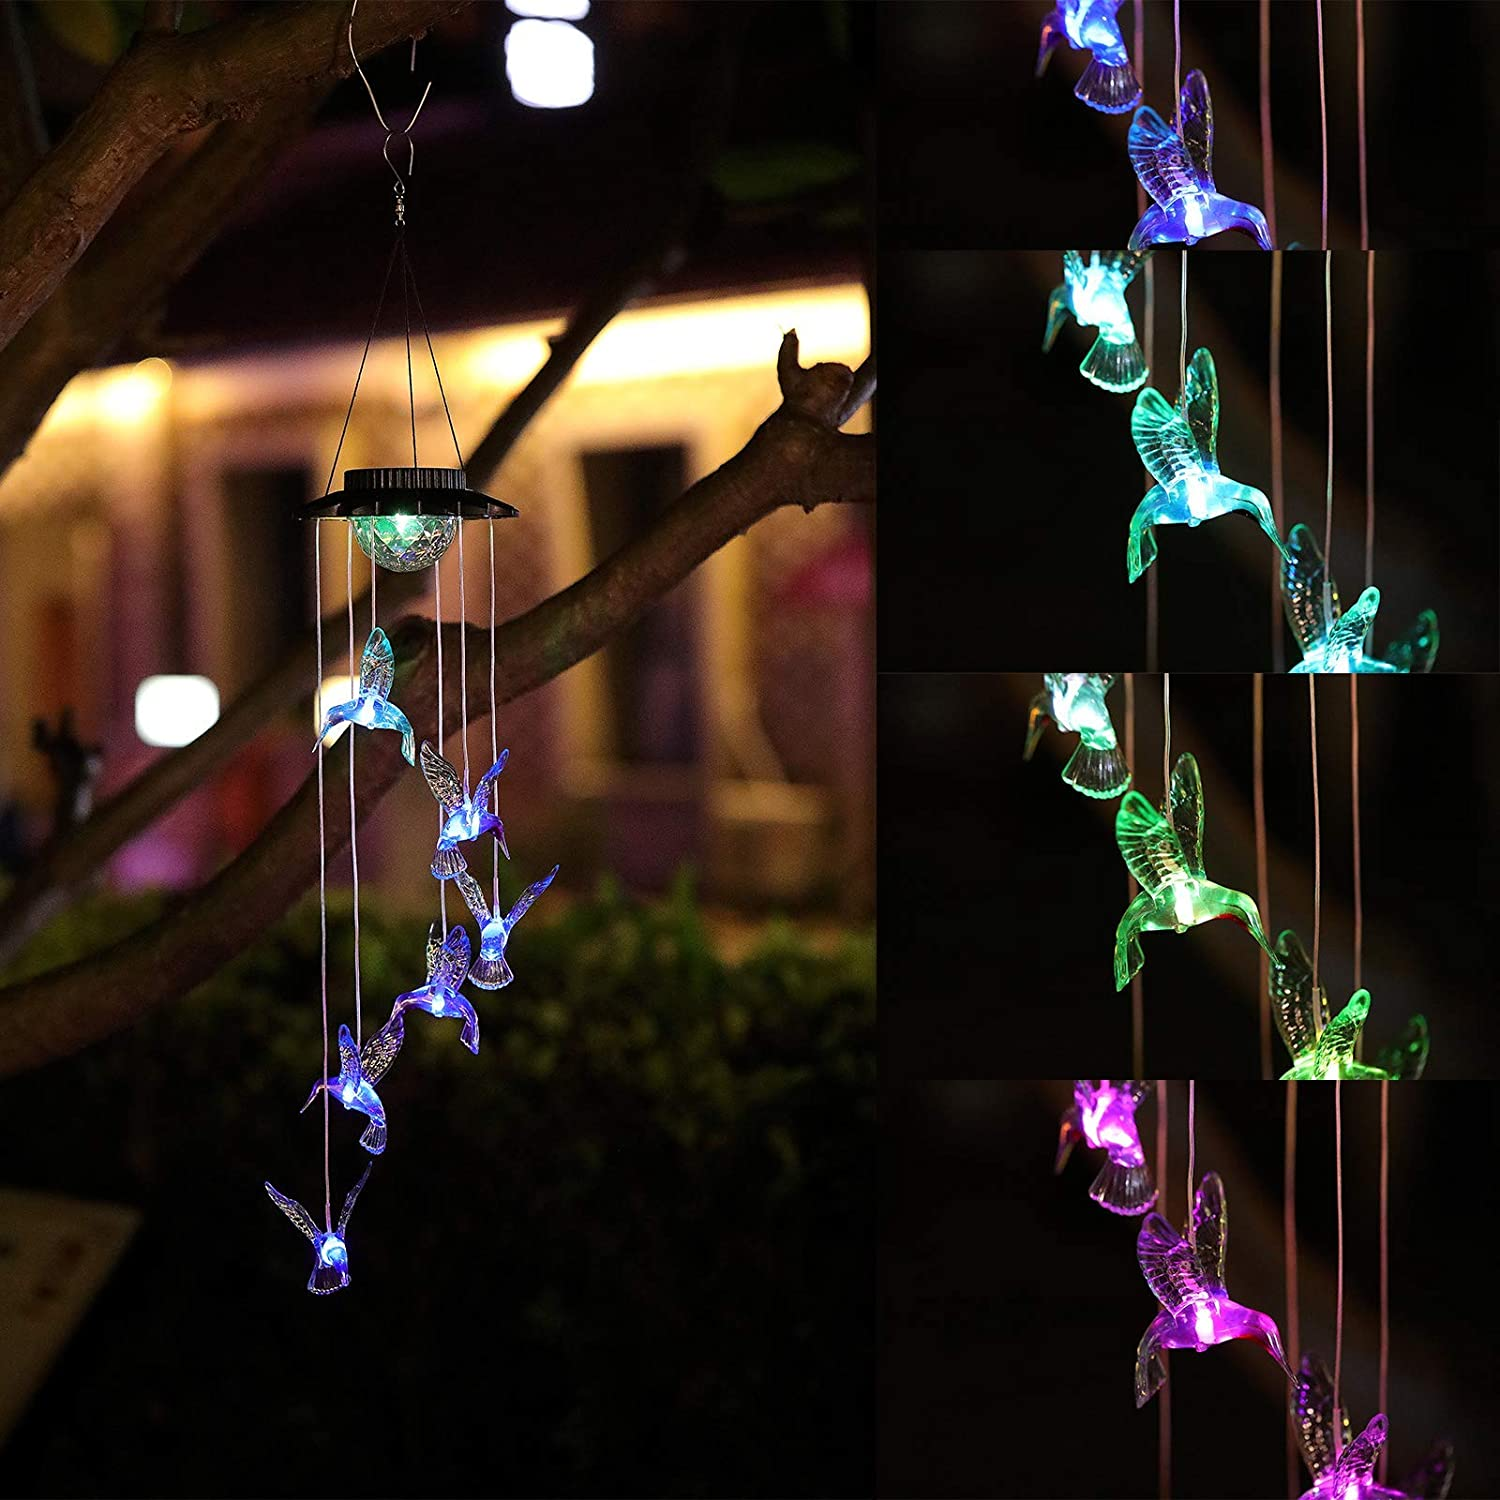 Yeuago Solar Wind Chimes for Outside, Changing Color LED Hummingbird Wind Chimes,Decor for Patio Yard Garden Home,for Mom, Grandma Birthday Gifts